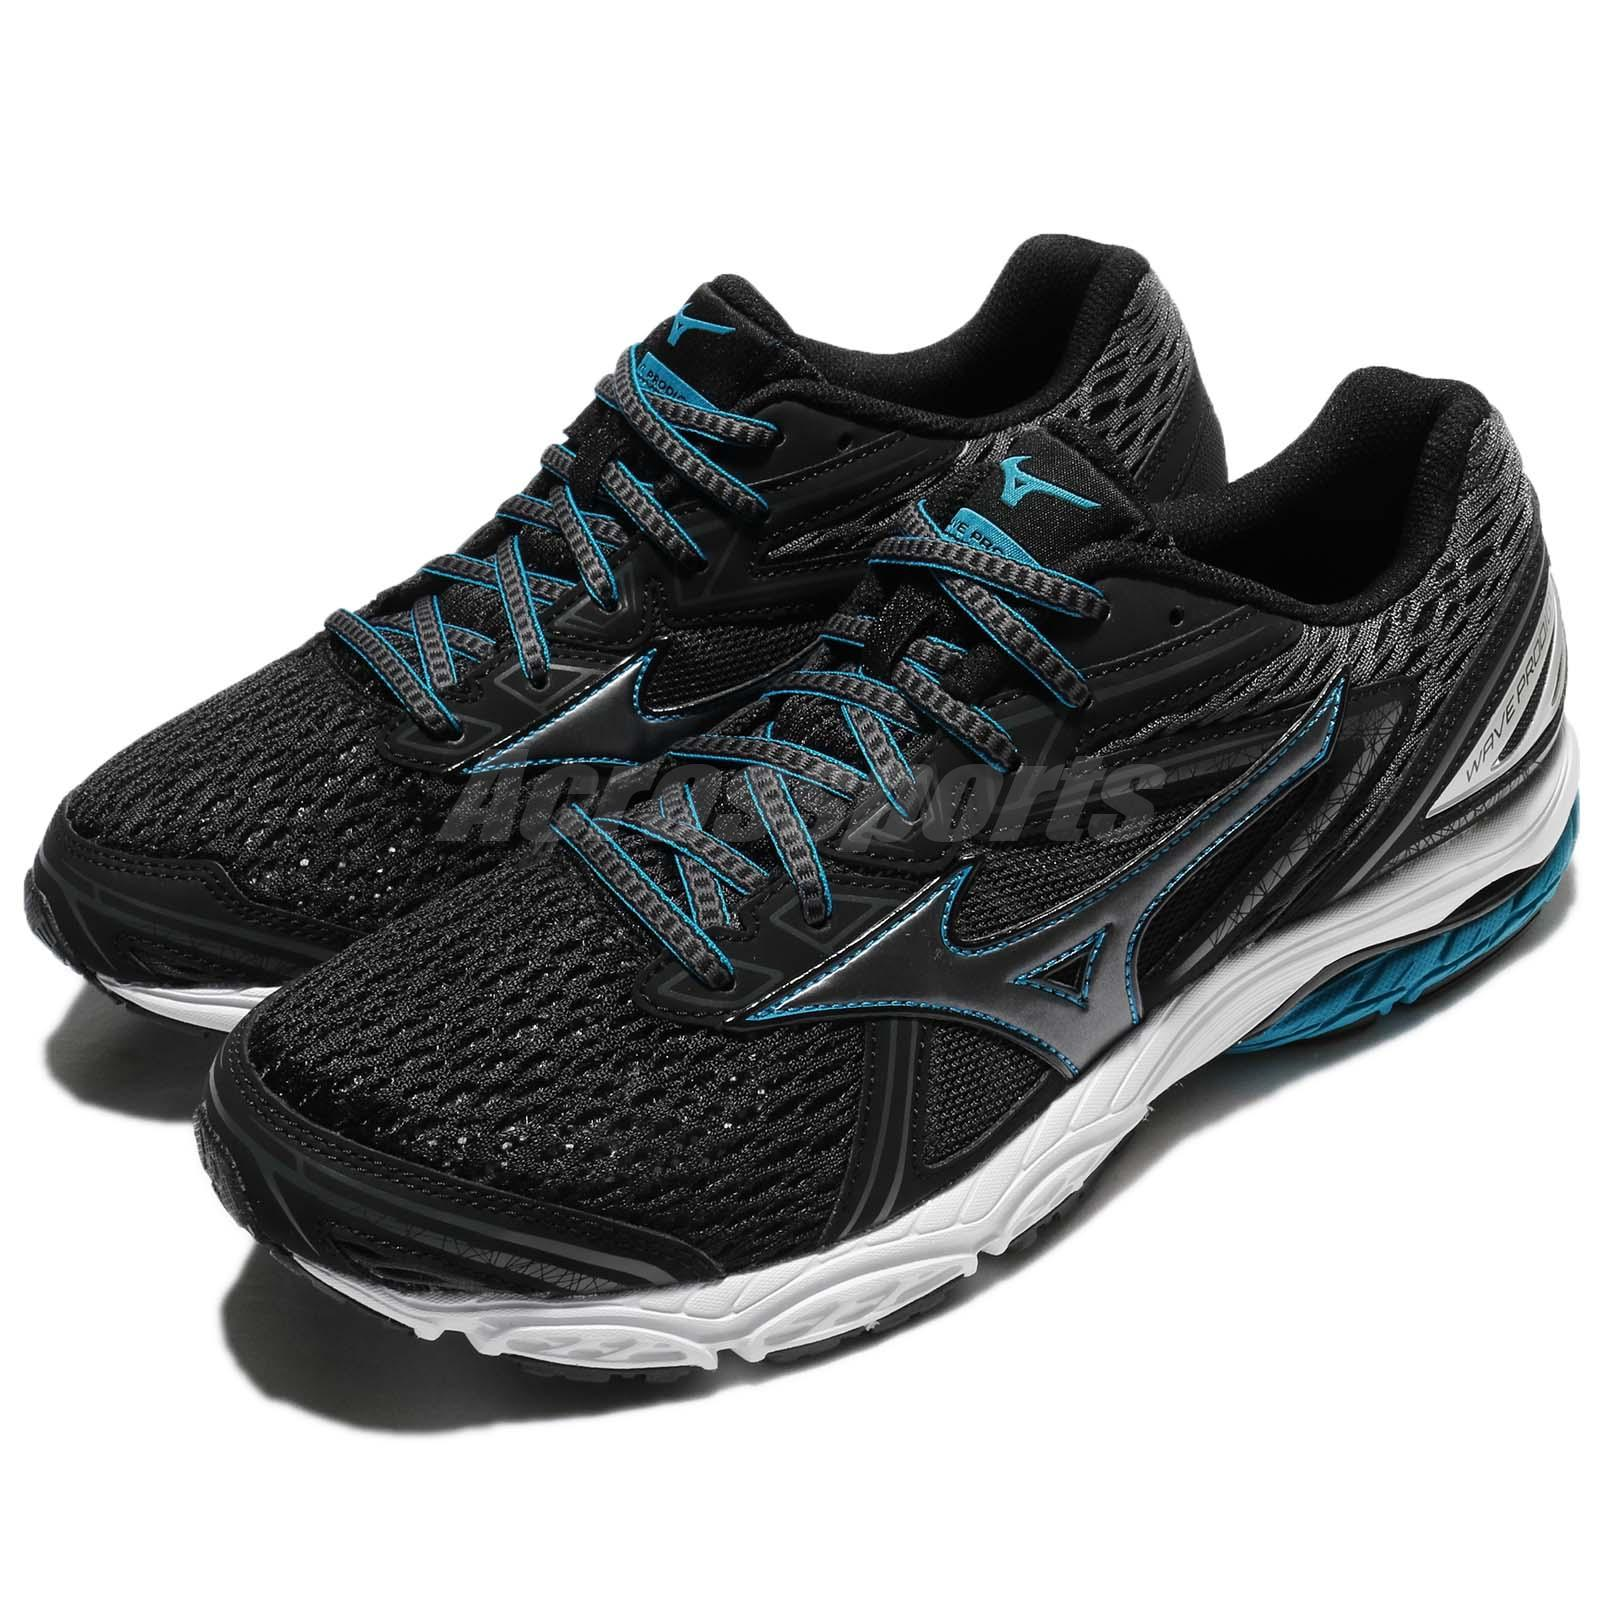 14f99f4c1cc0 Details about Mizuno Wave Prodigy Black Blue Men Running Shoes Sneakers  Trainers J1GC1710-52